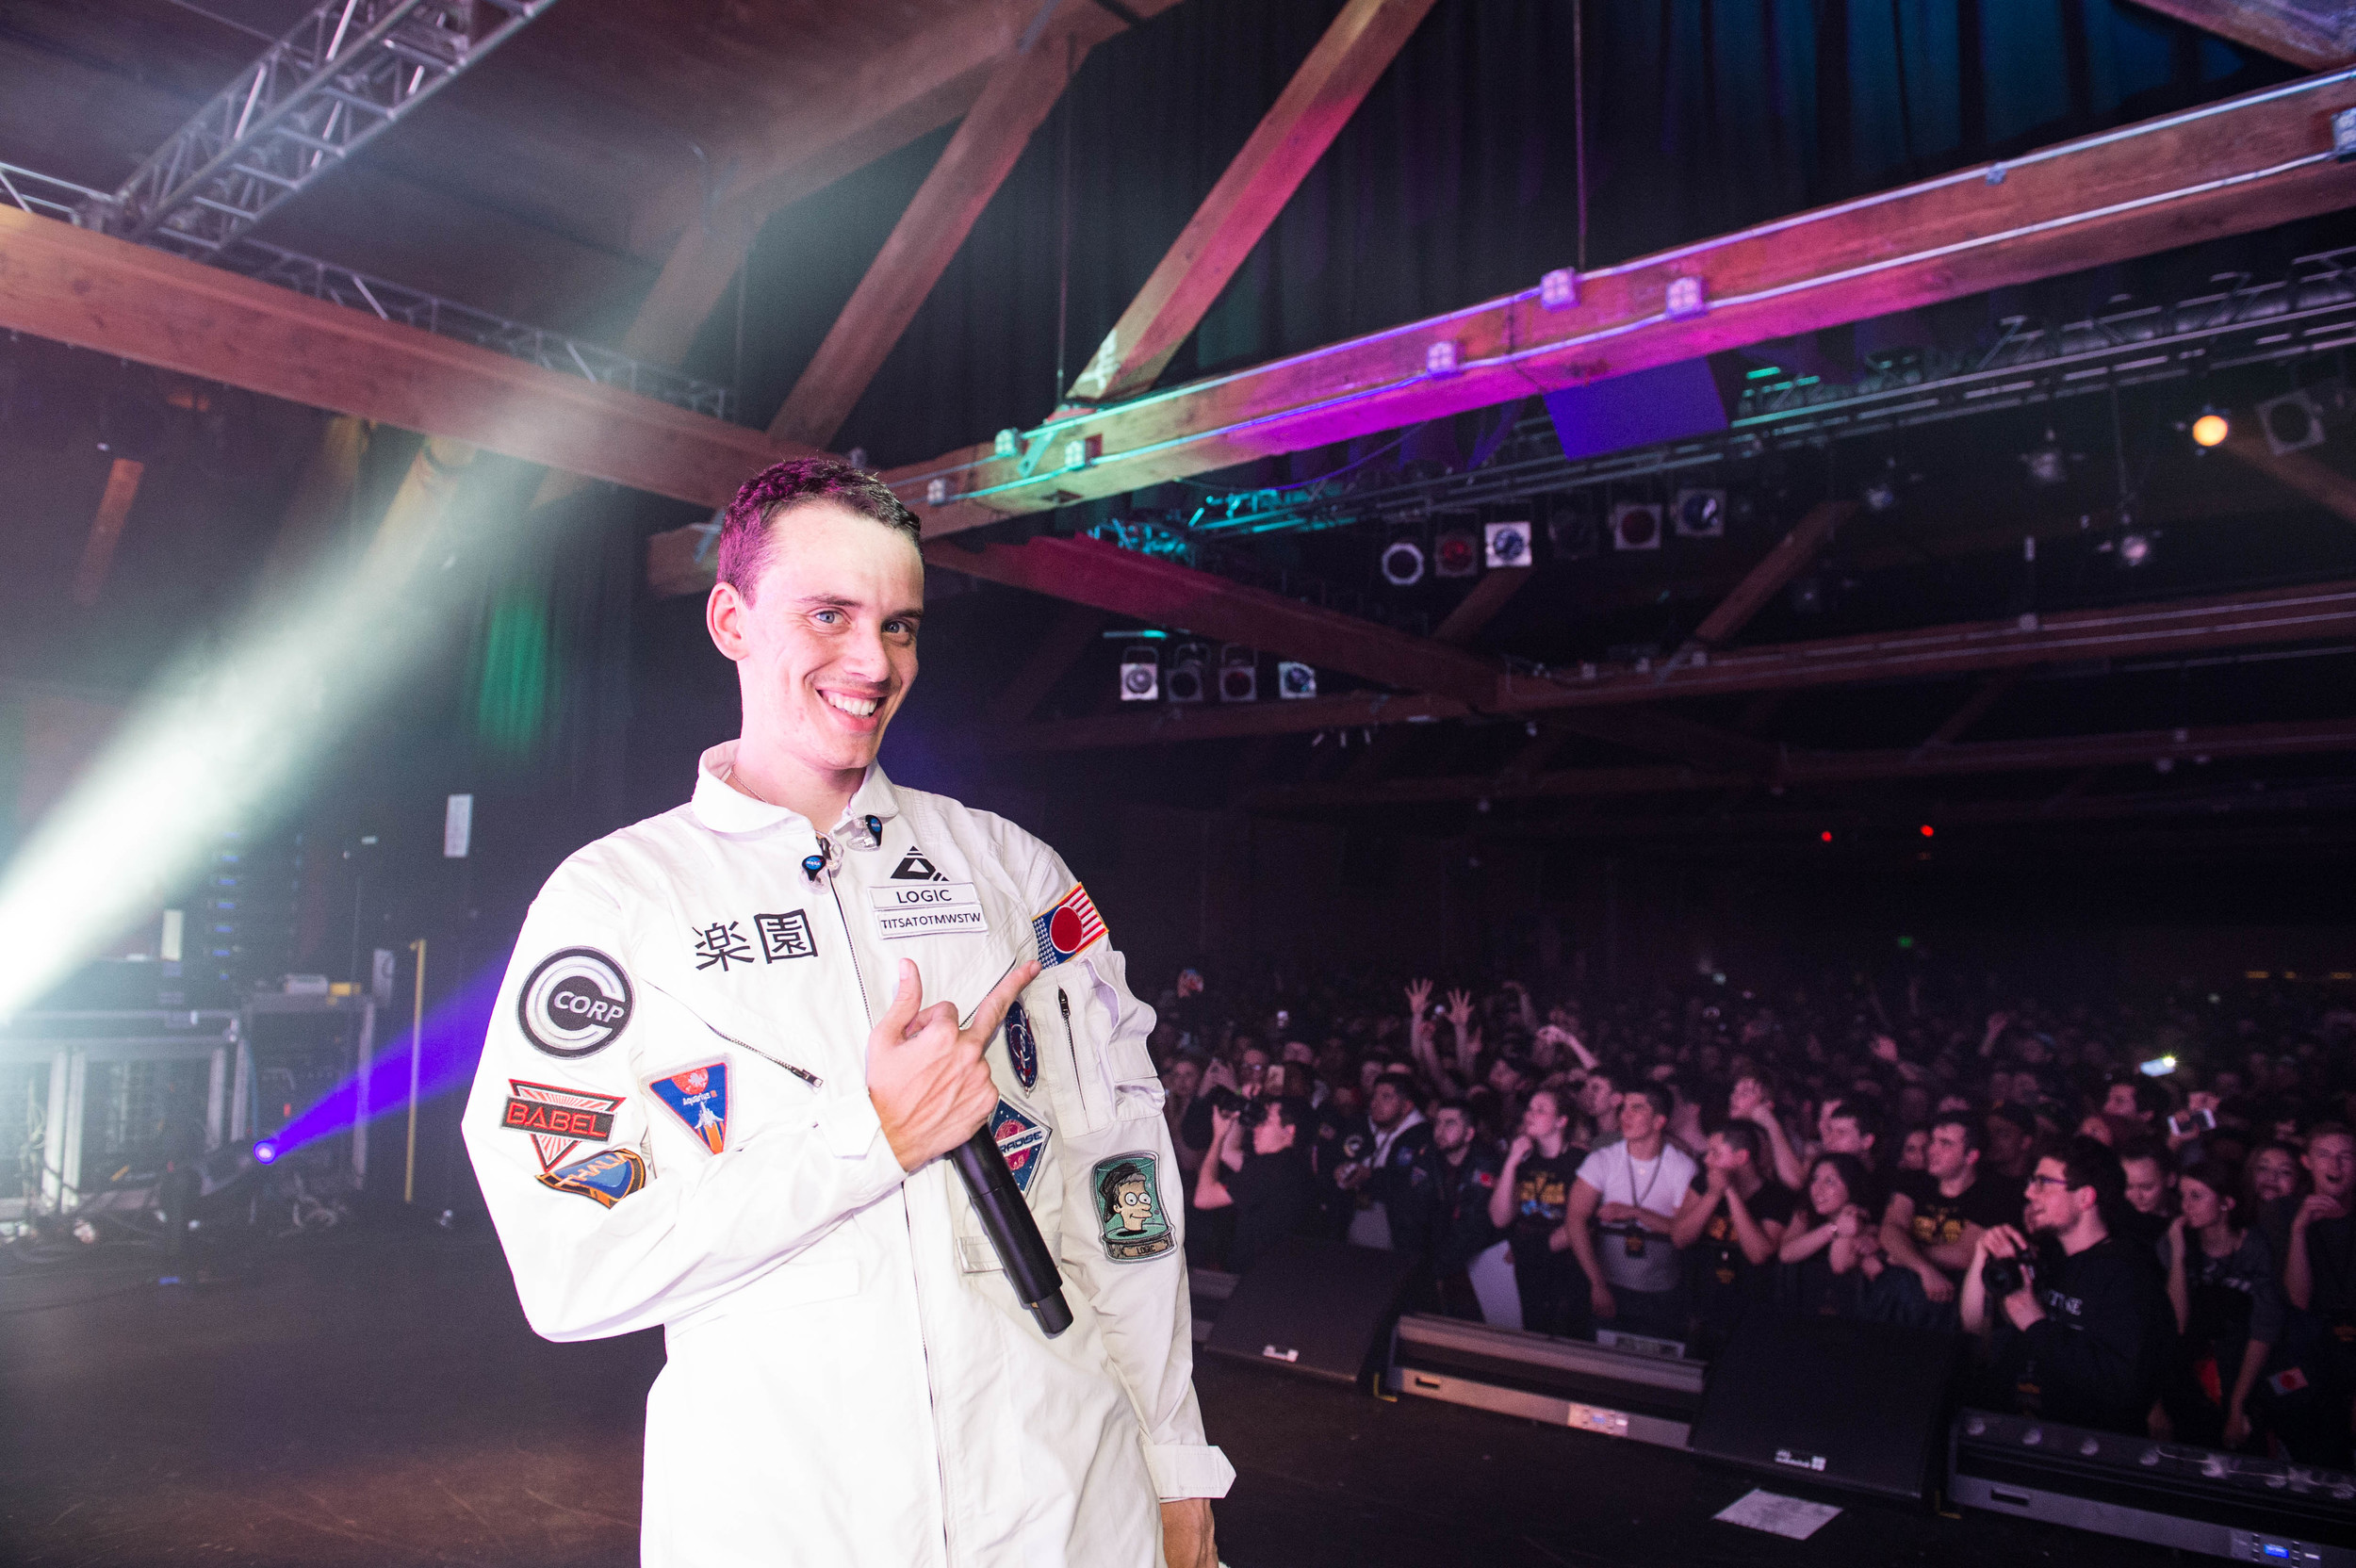 Logic flipping me off mid performance